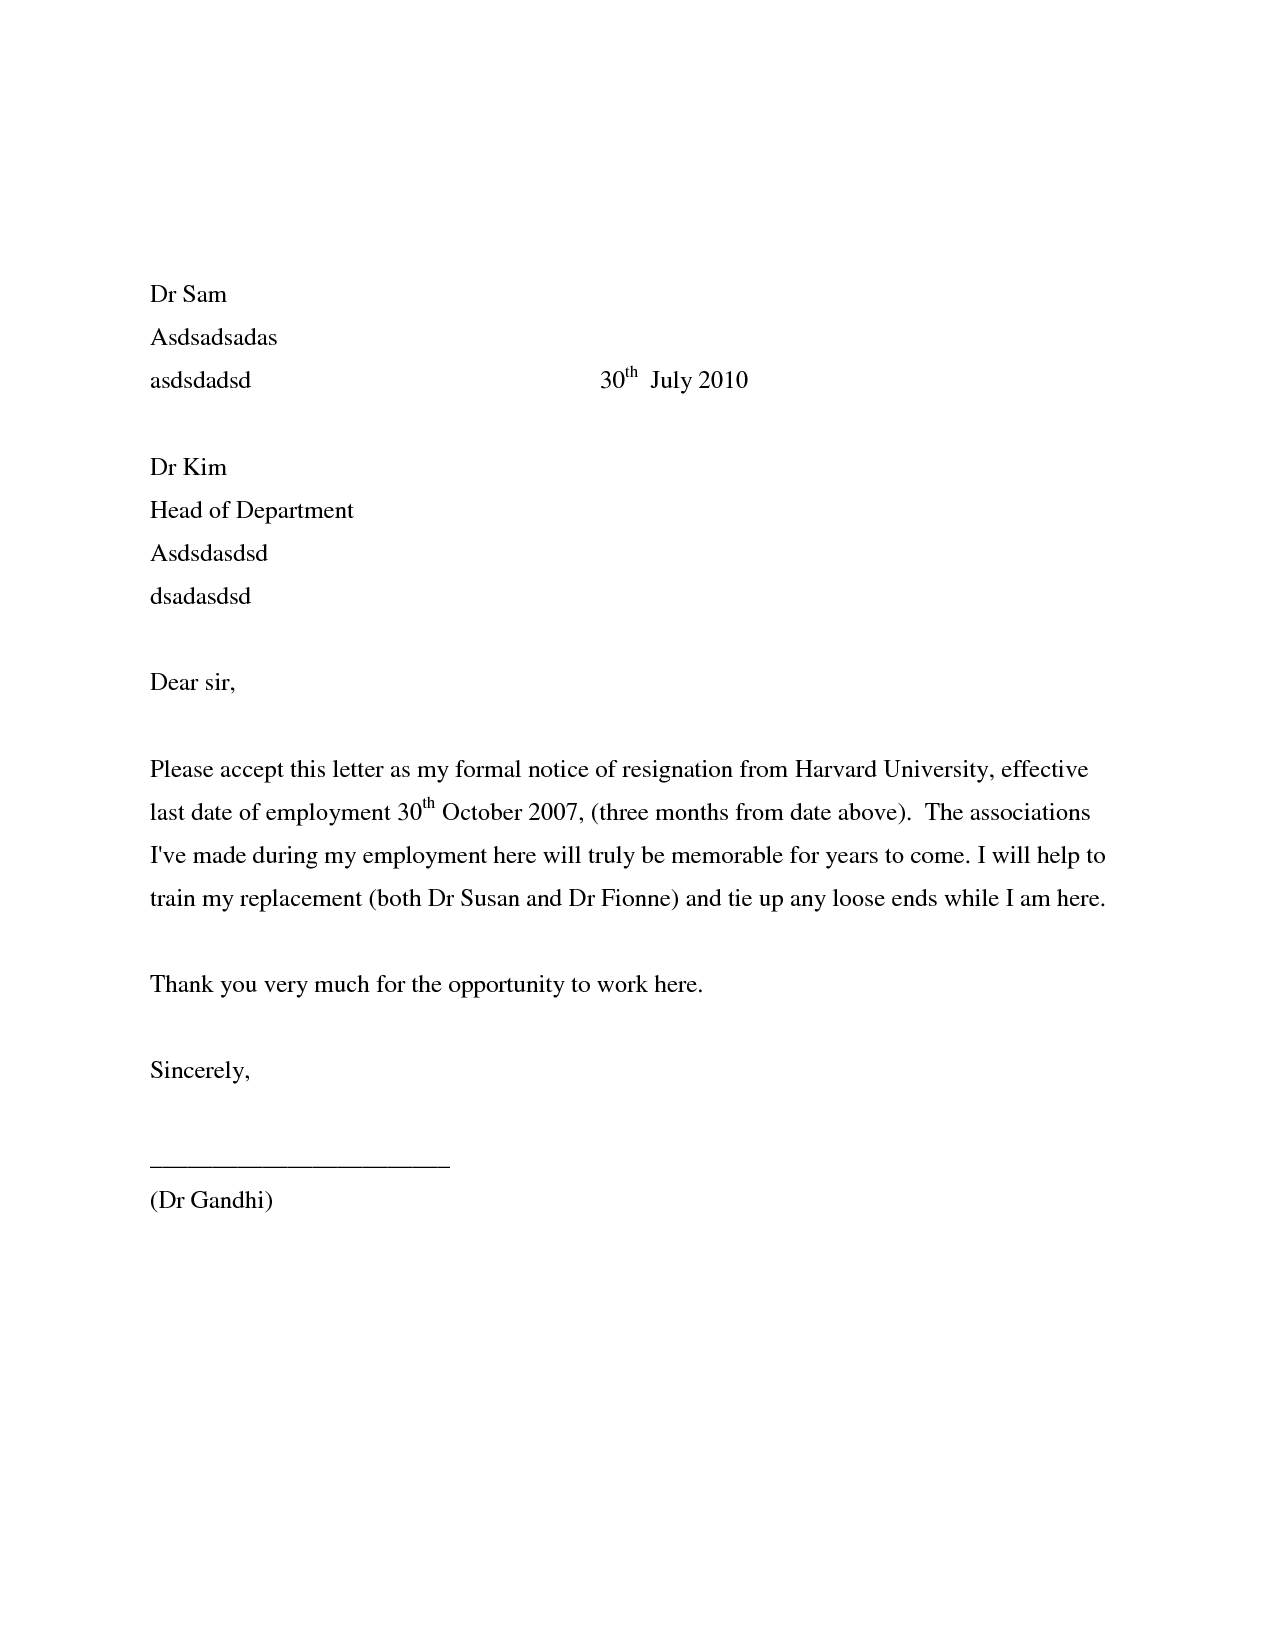 simple resignation letters examples seeabruzzowriting a letter of simple resignation letters examples seeabruzzowriting a letter of resignation email letter sample